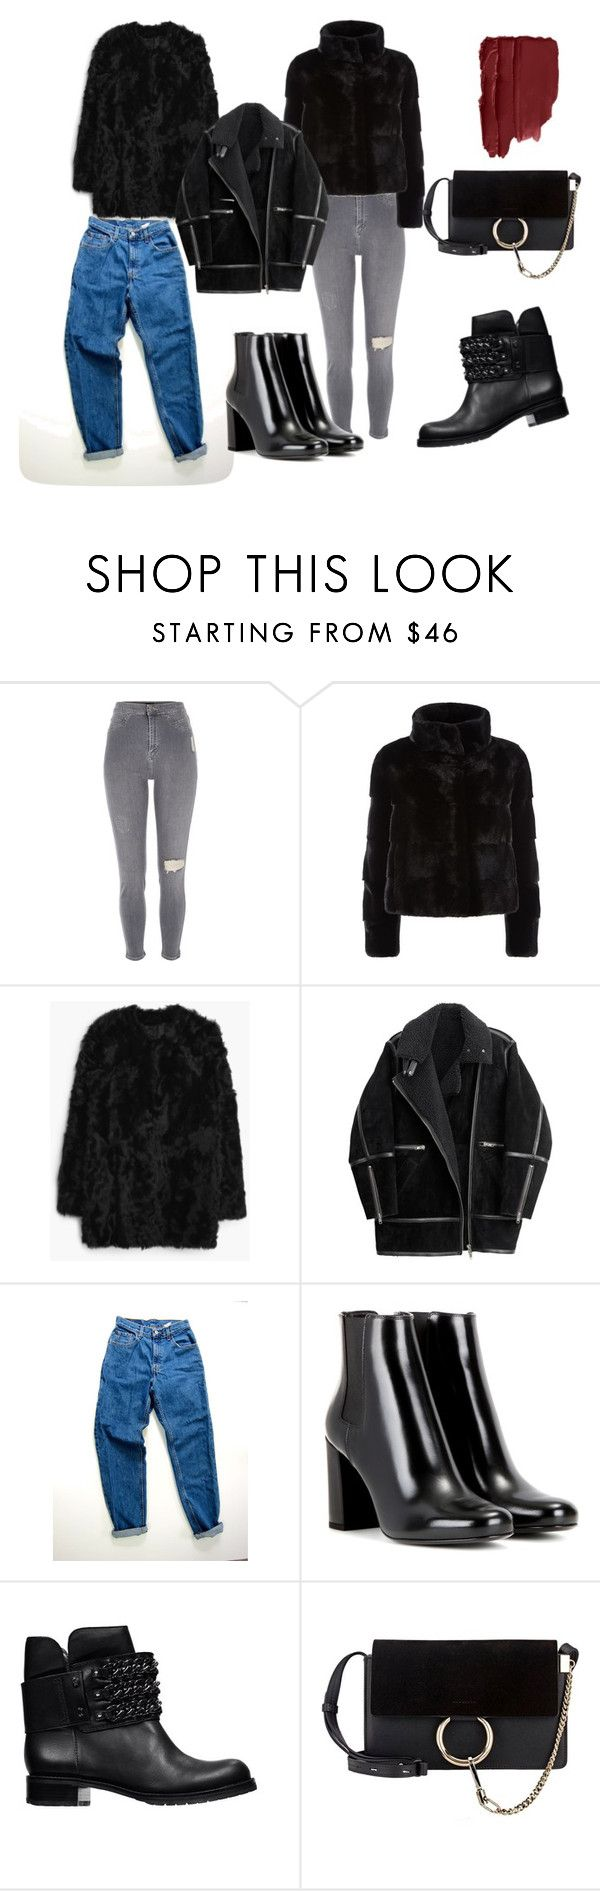 """97689"" by alena-mendesh on Polyvore featuring мода, River Island, Harrods, MANGO, H&M, Levi's, Yves Saint Laurent и DKNY"